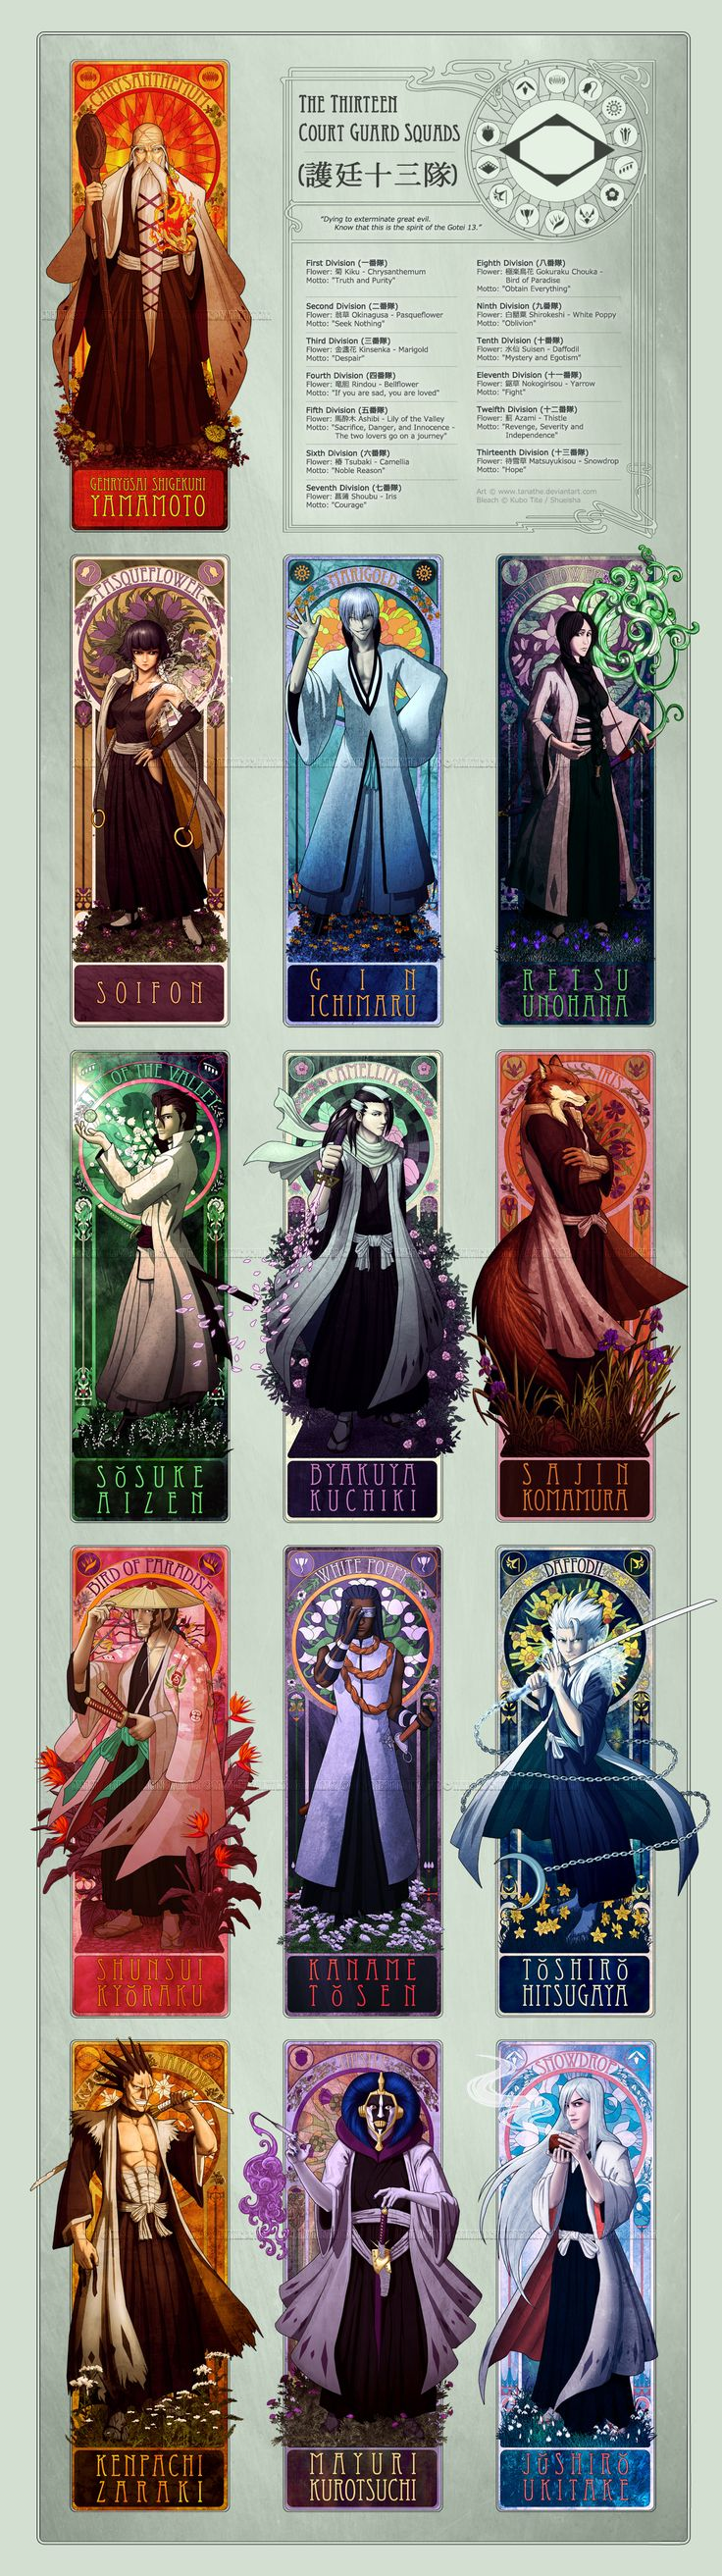 Gotei 13 Card Set by tanathe.deviantart.com on @deviantART